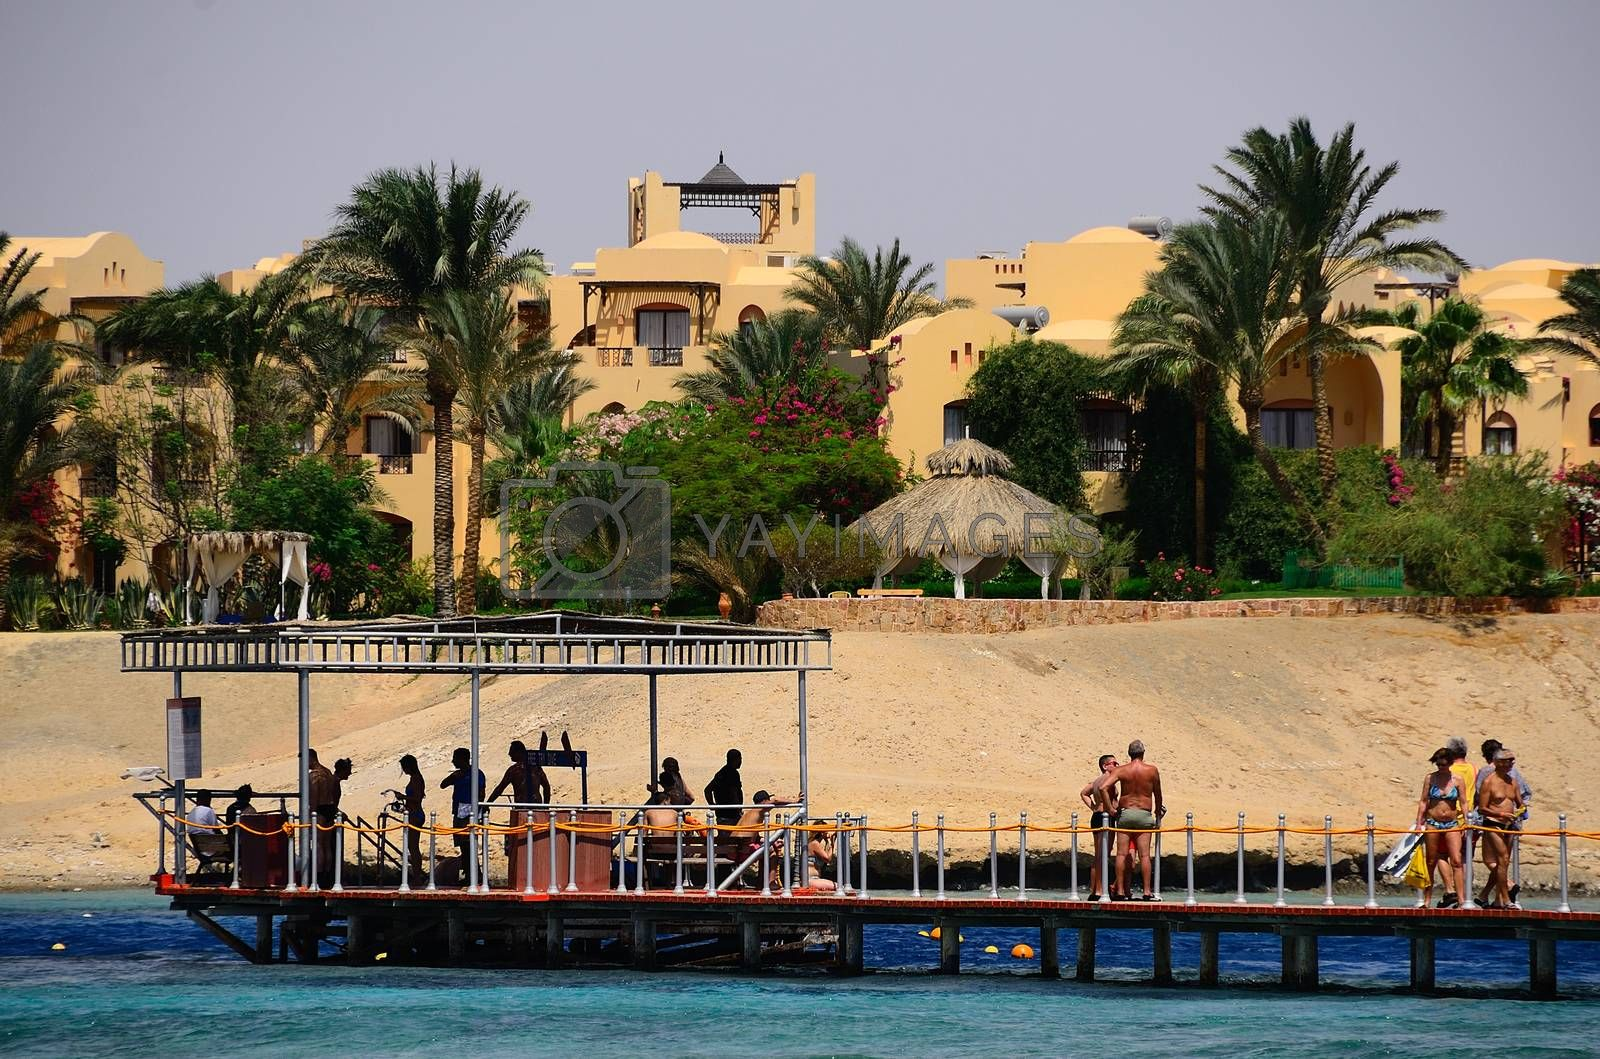 jetty with people on the coral reef in Egypt